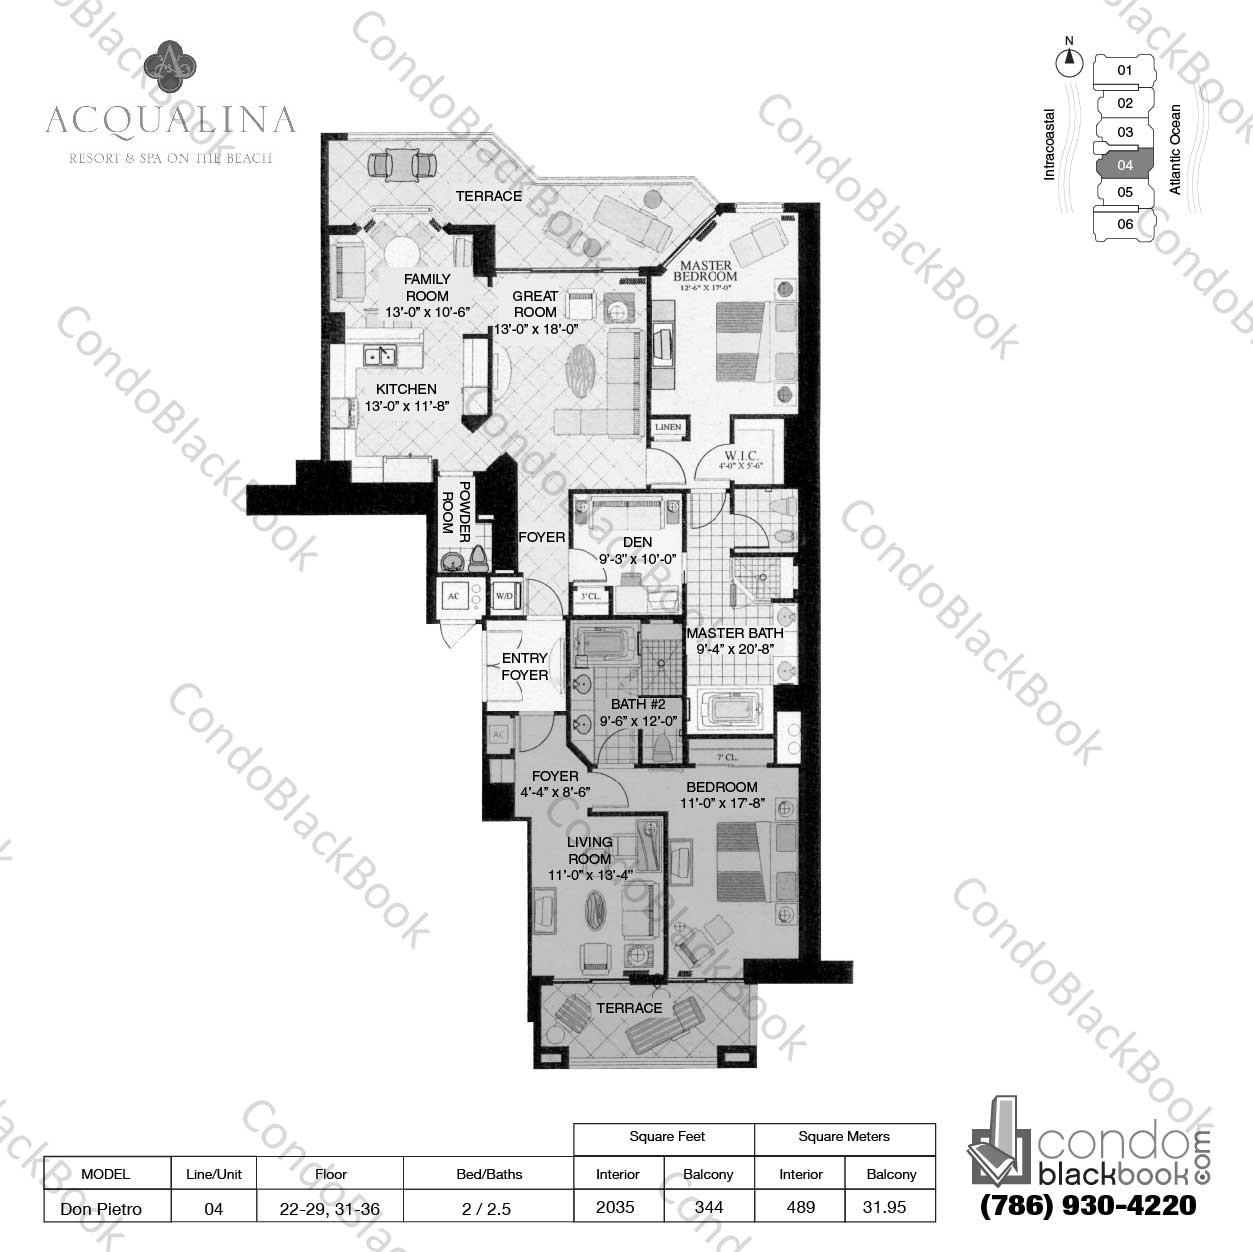 Floor plan for Acqualina Sunny Isles Beach, model Don Pietro, line 04, 2 / 2.5 bedrooms, 2035 sq ft